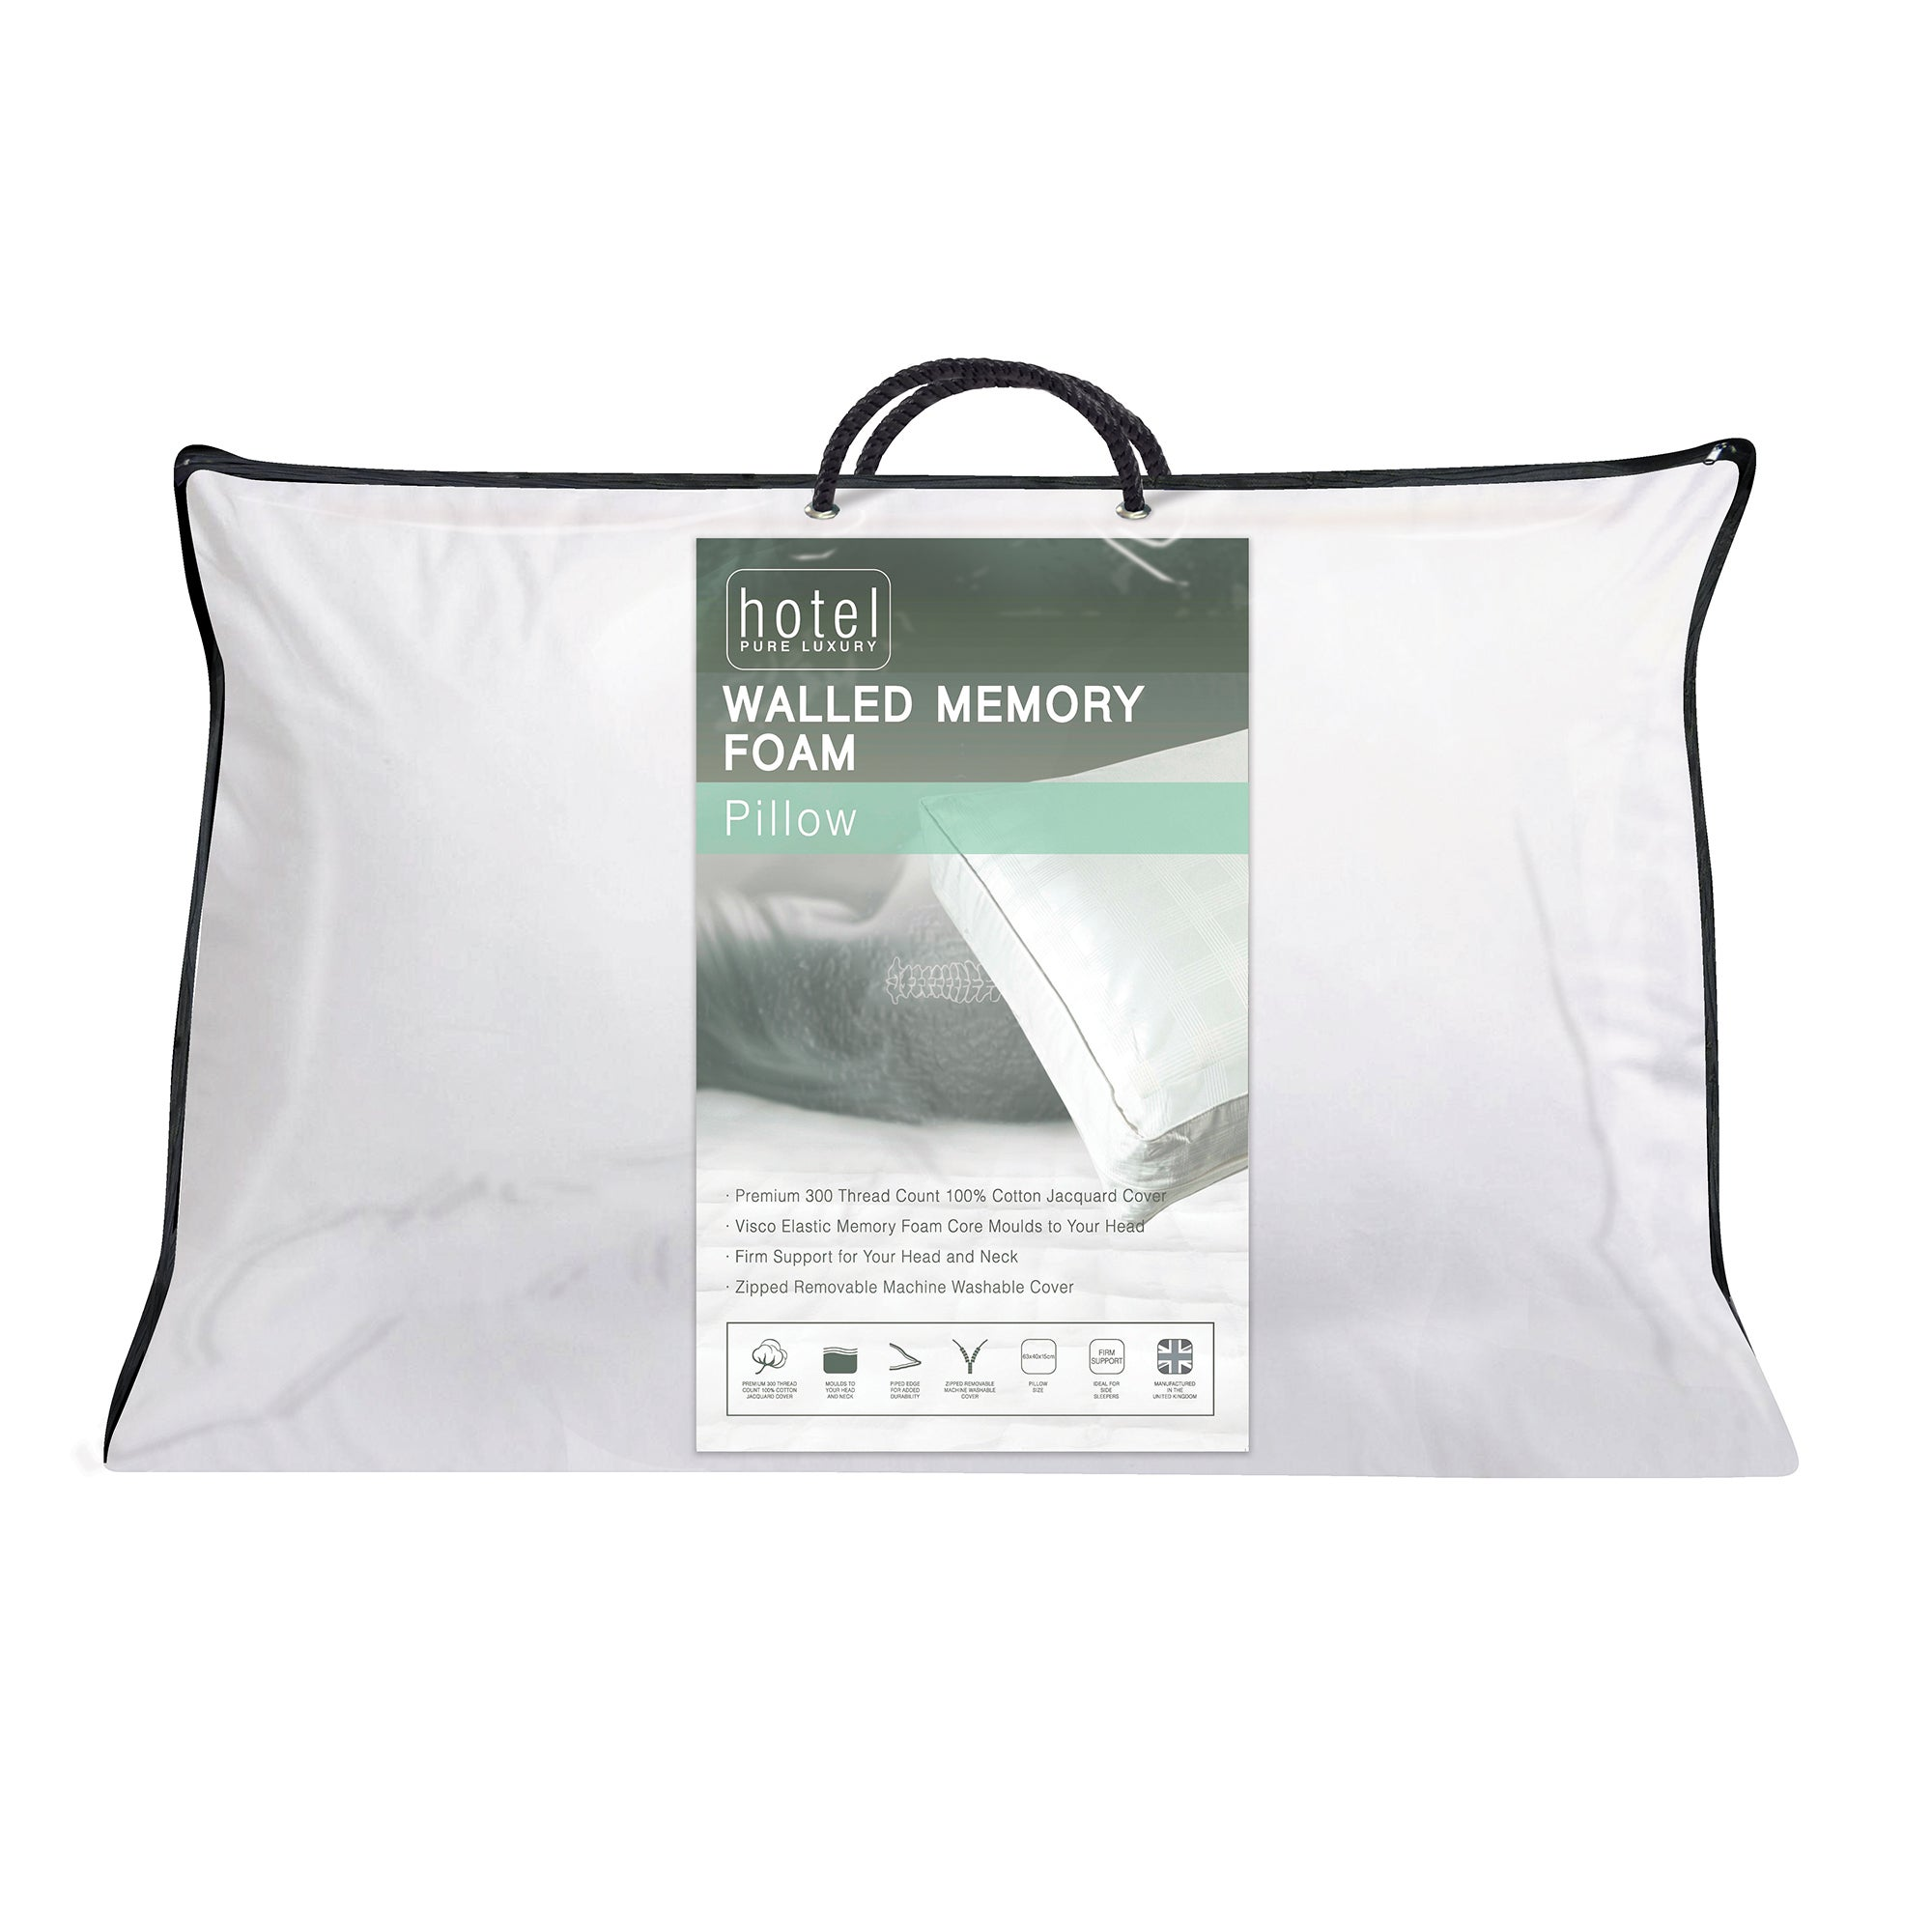 Hotel Memory Foam Walled Pillow